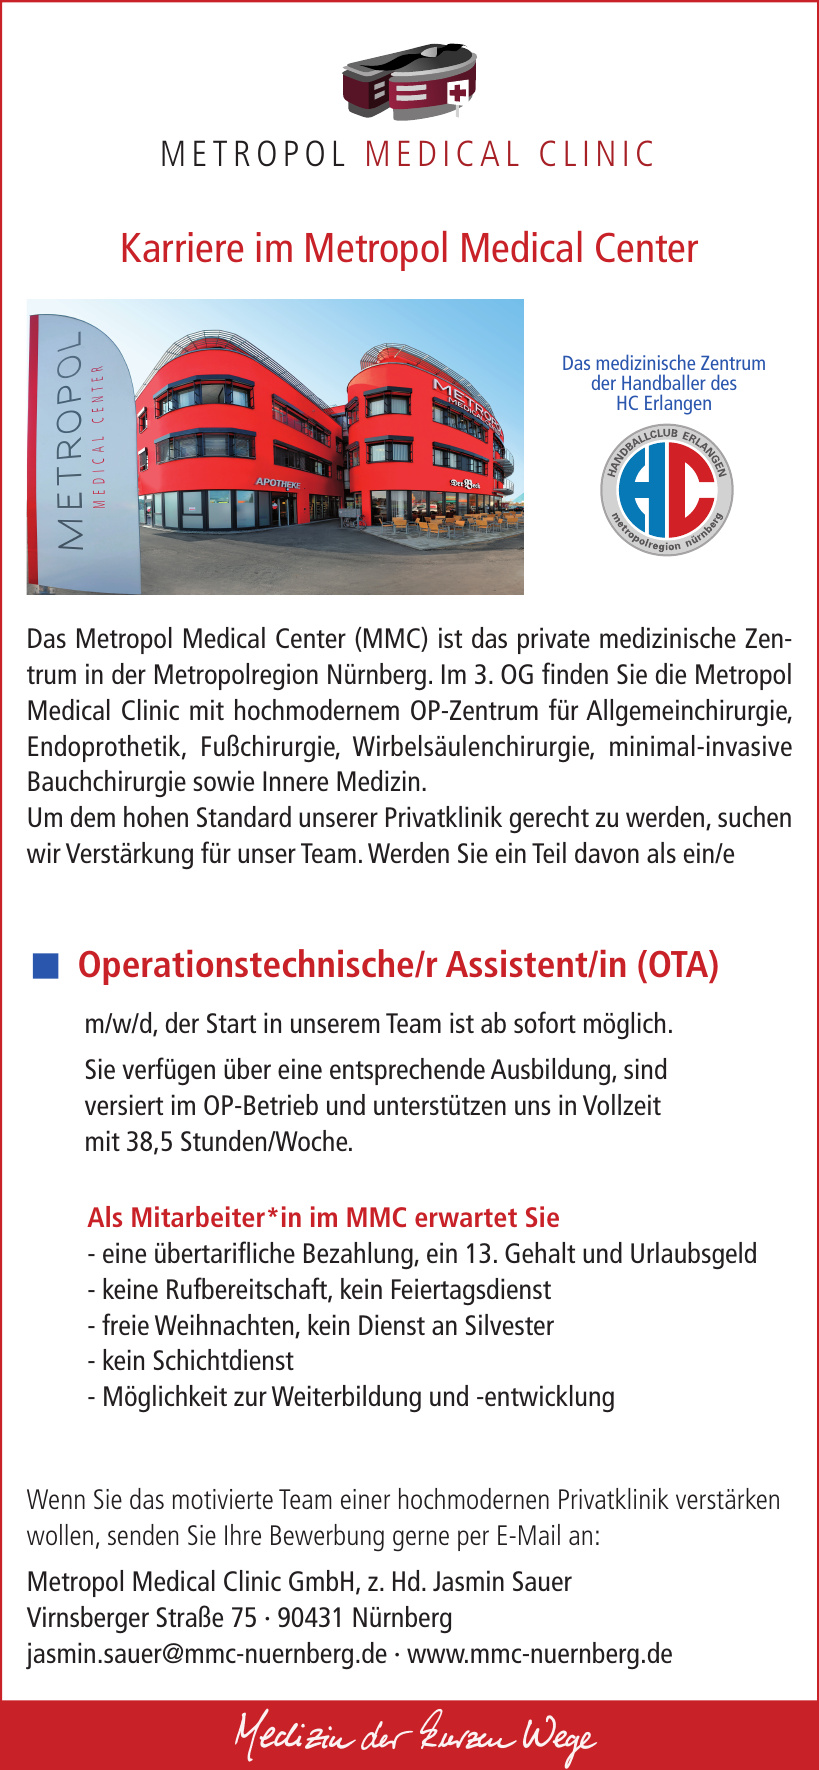 Metropol Medical Clinic GmbH